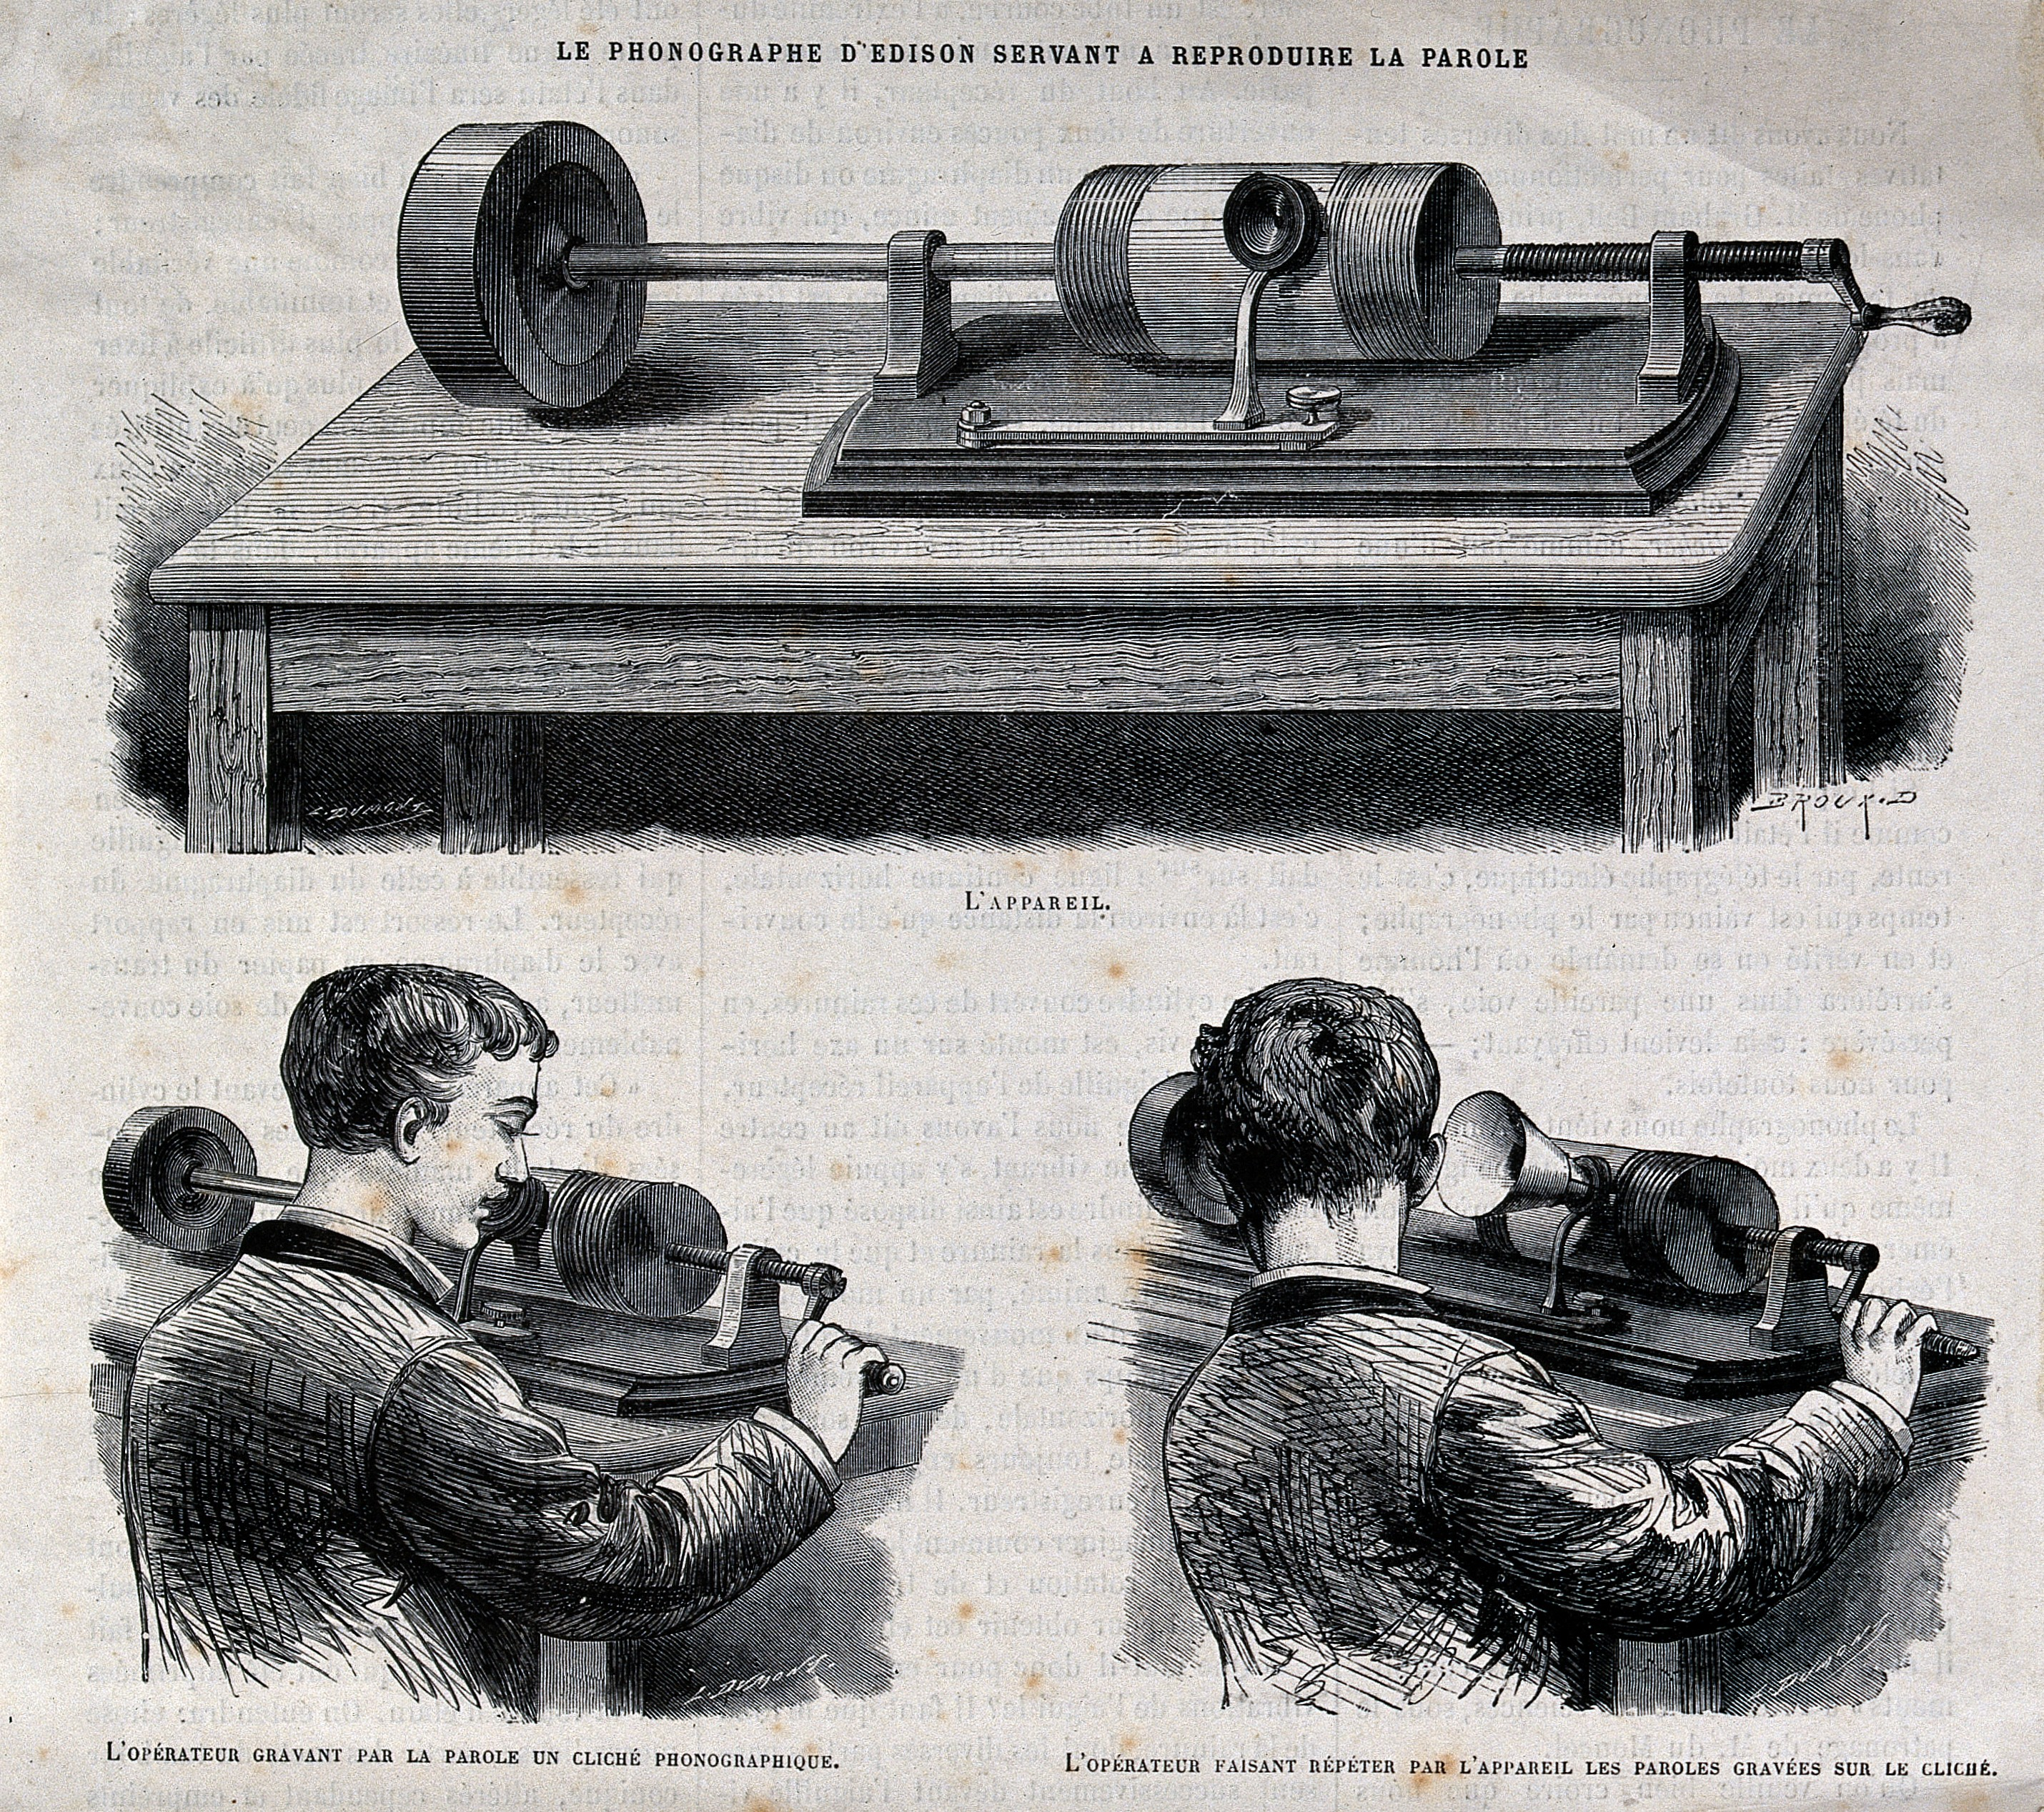 A reproduction of a wood engraving showing the use of an Edison wax cylinder recorder in both recording and playback mode.